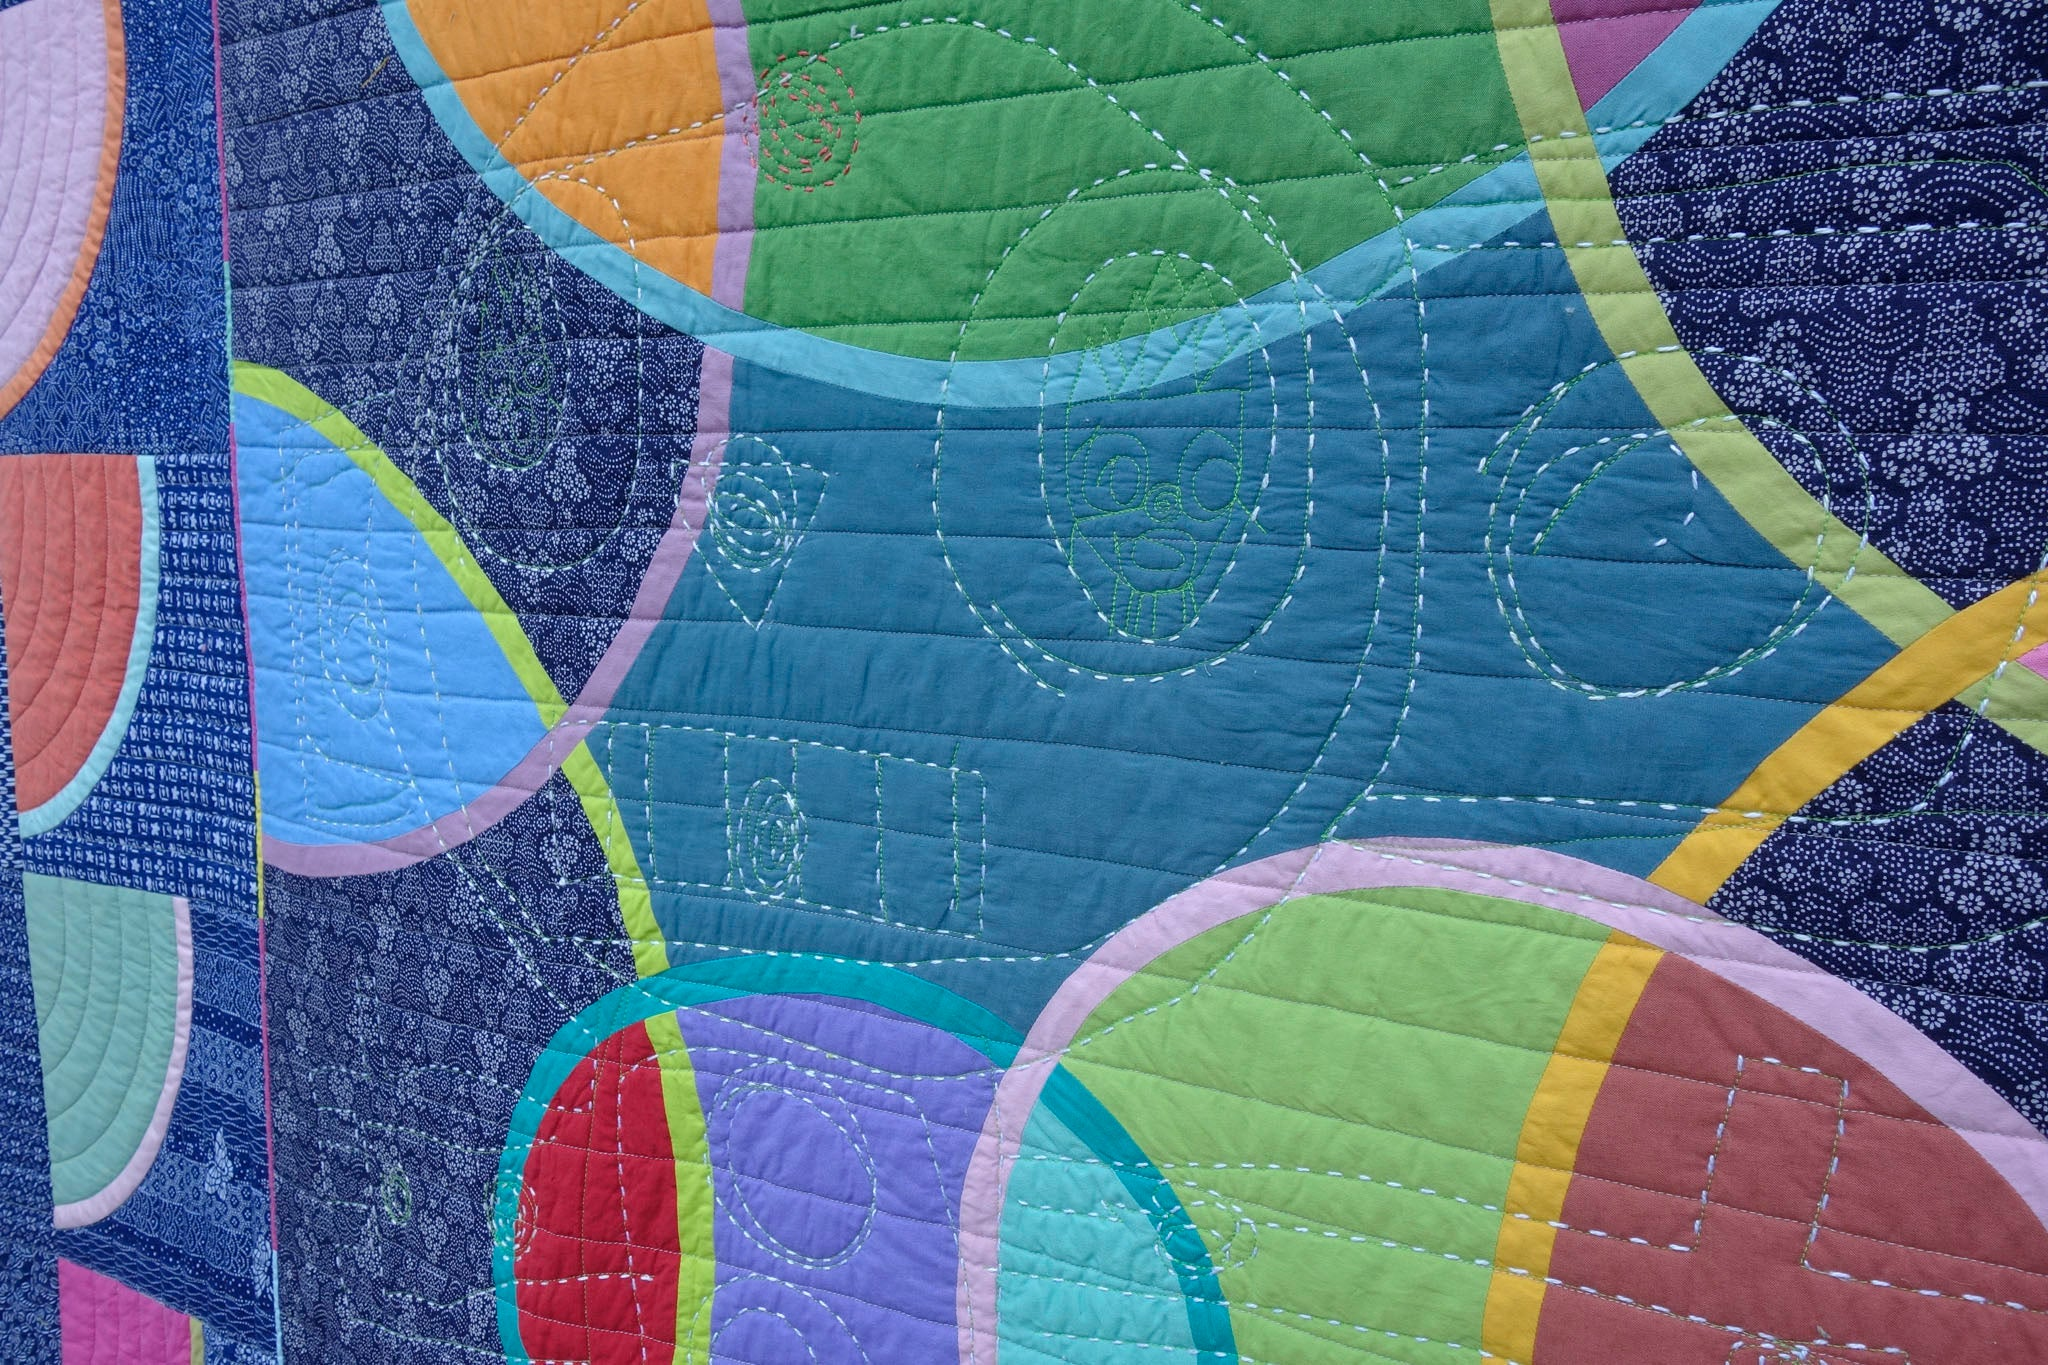 Watermelon From Mars, detail, a quilt by Patricia Belyea